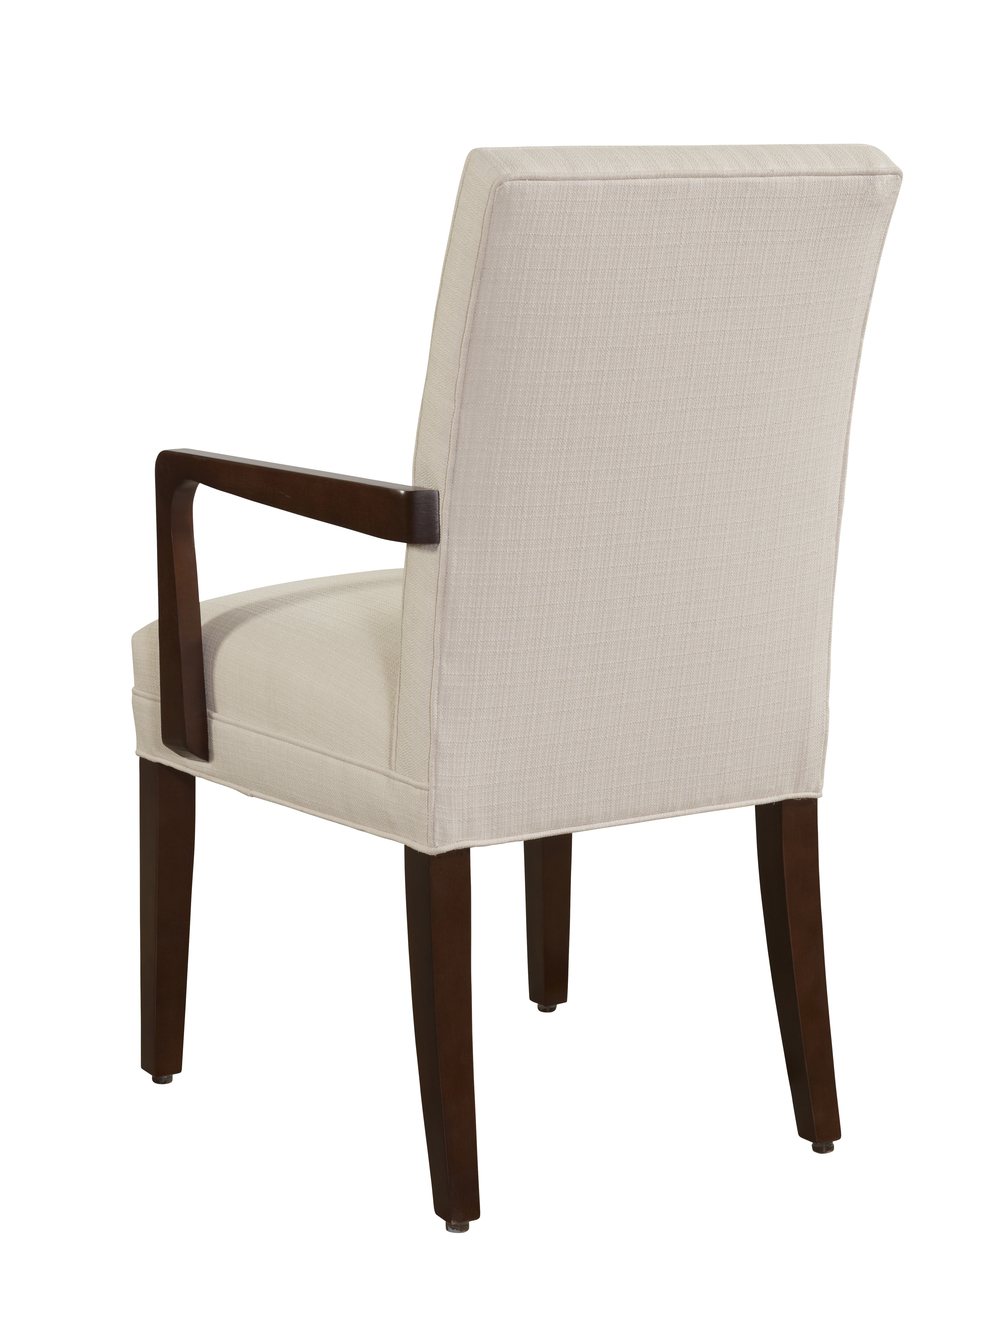 Designmaster Furniture - Chicago Arm Chair